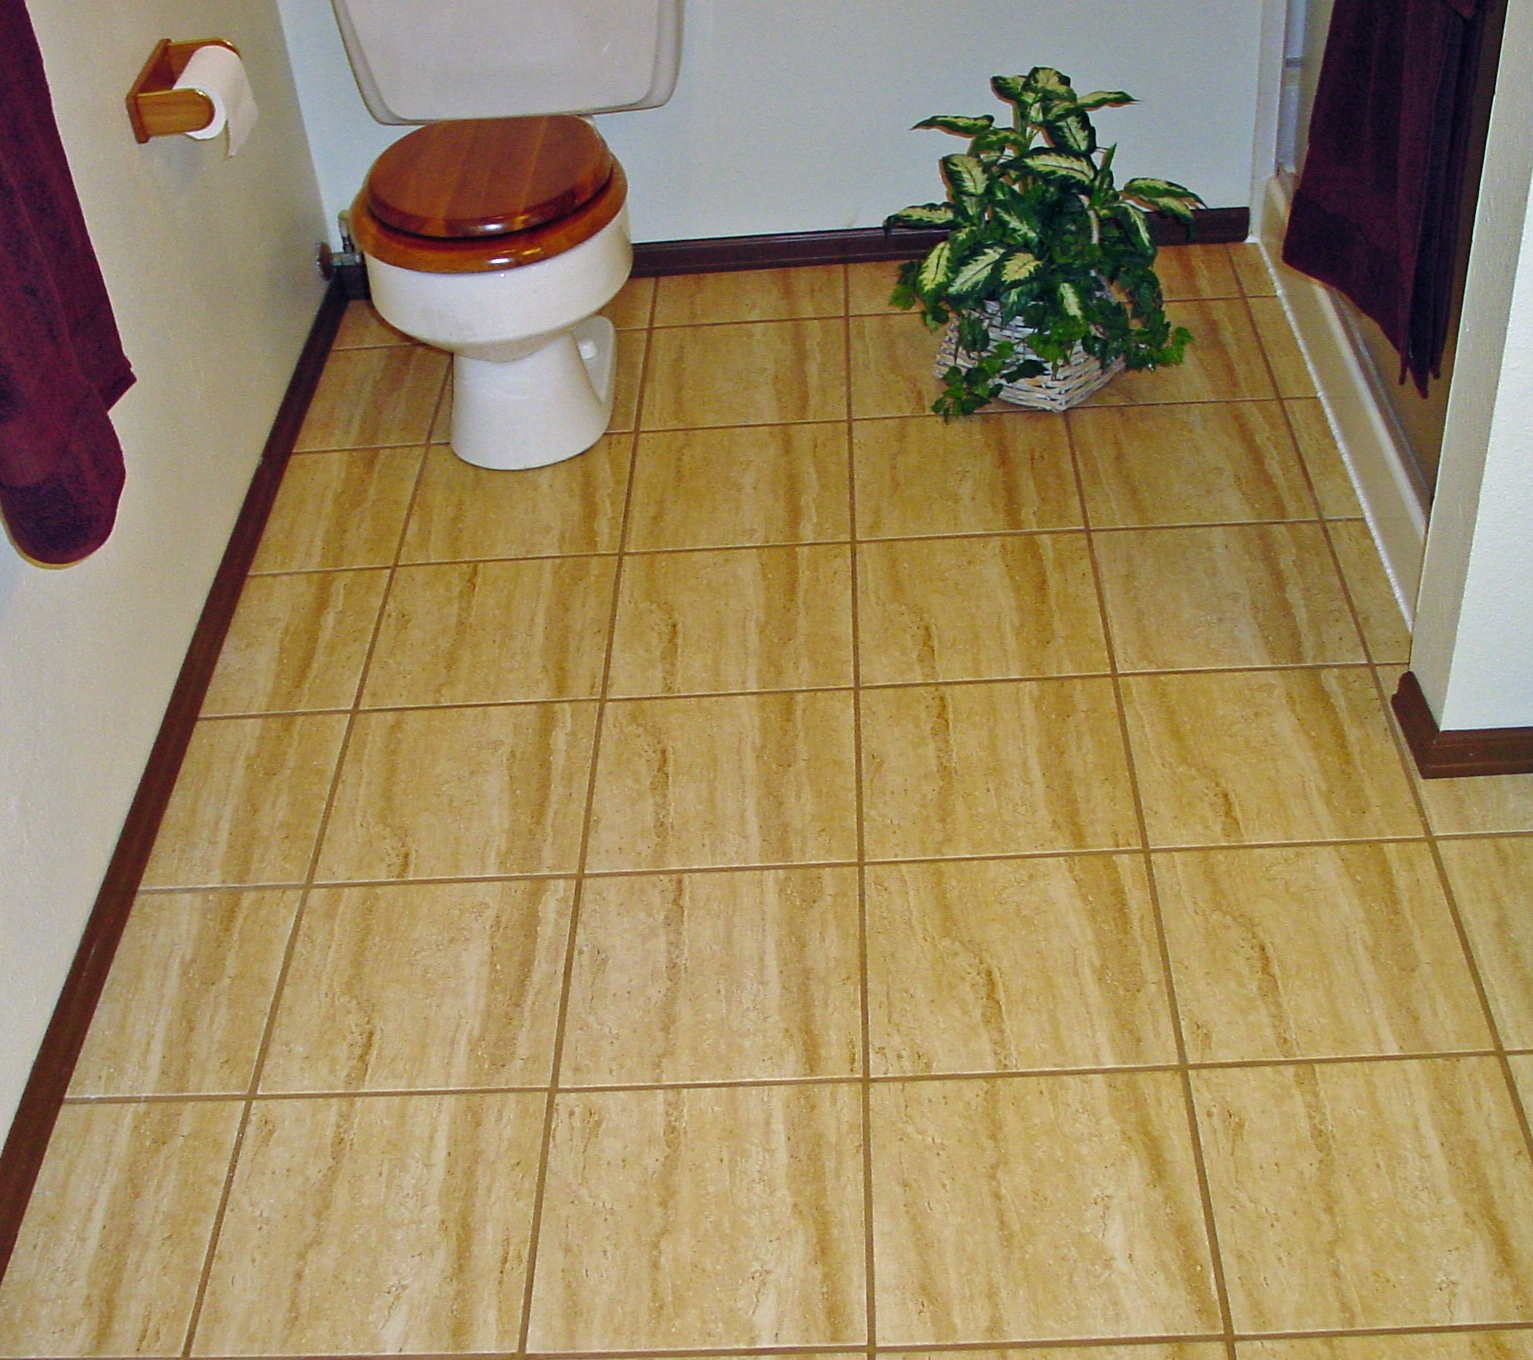 Seal Wood Floor Before Tiling1533 X 1360